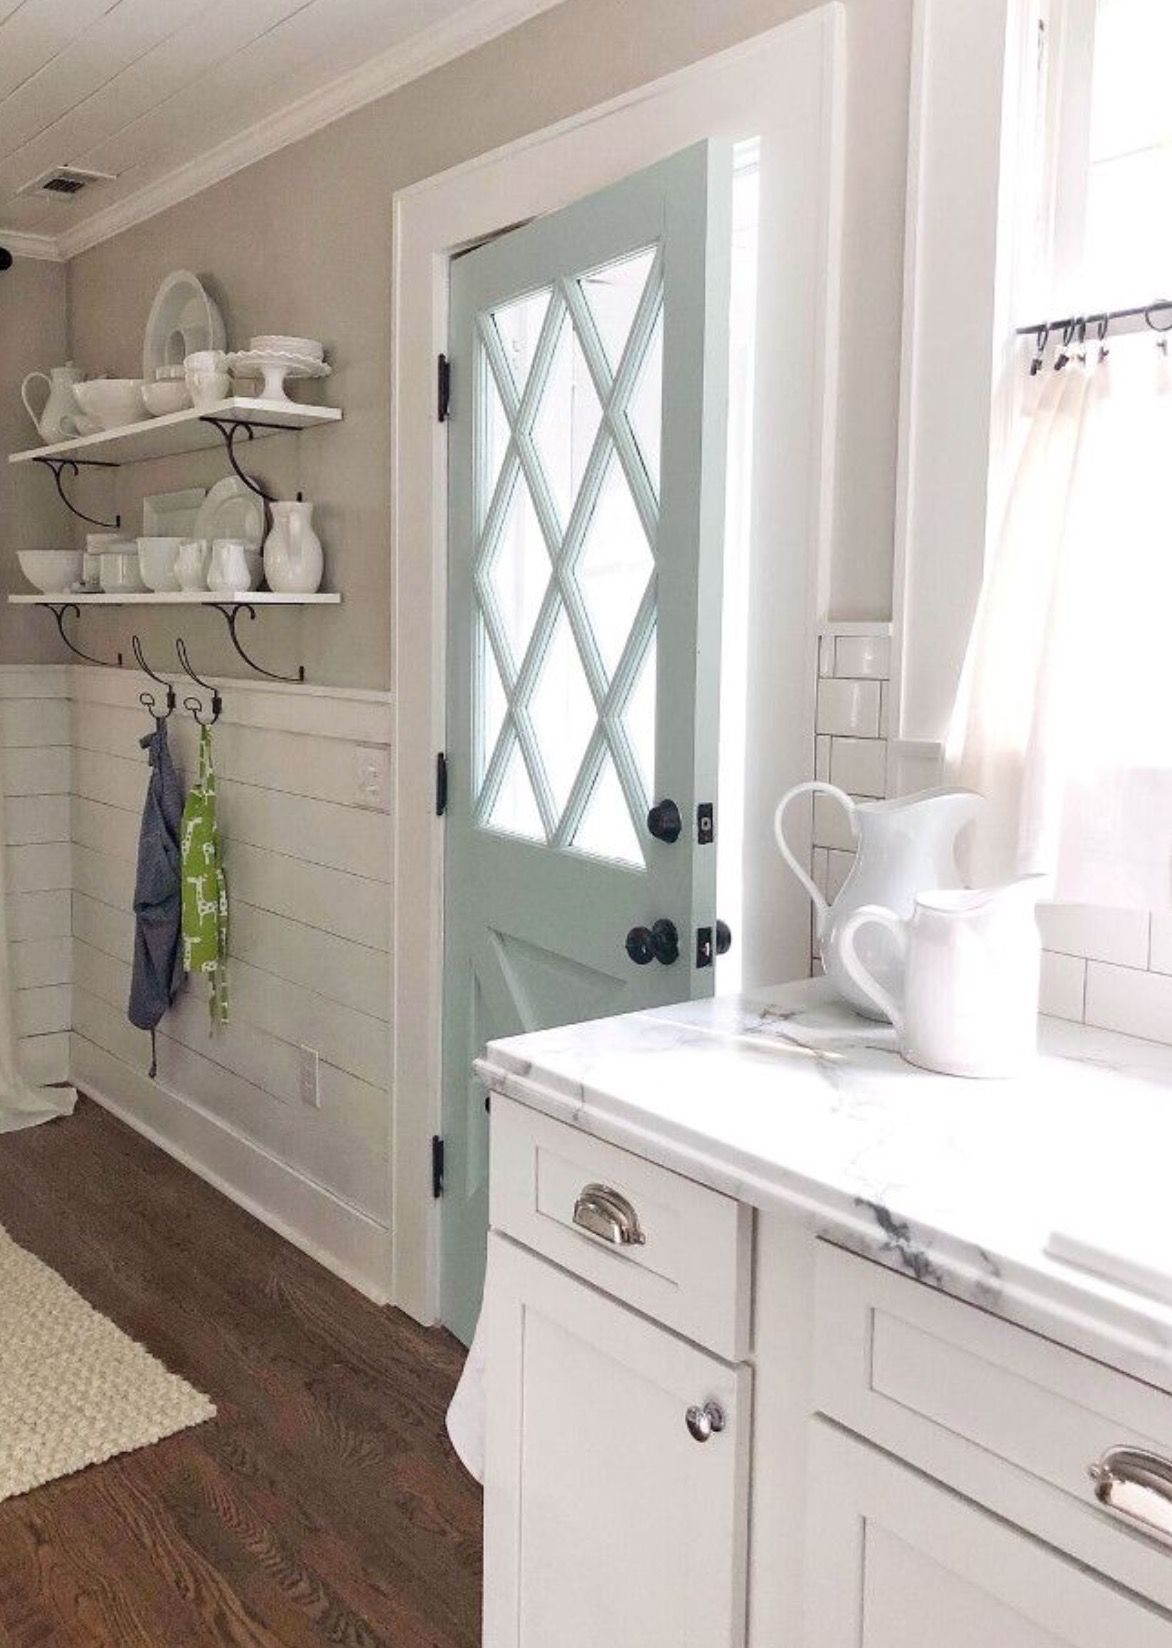 Agreeable gray with Seasalt paint and white trim color